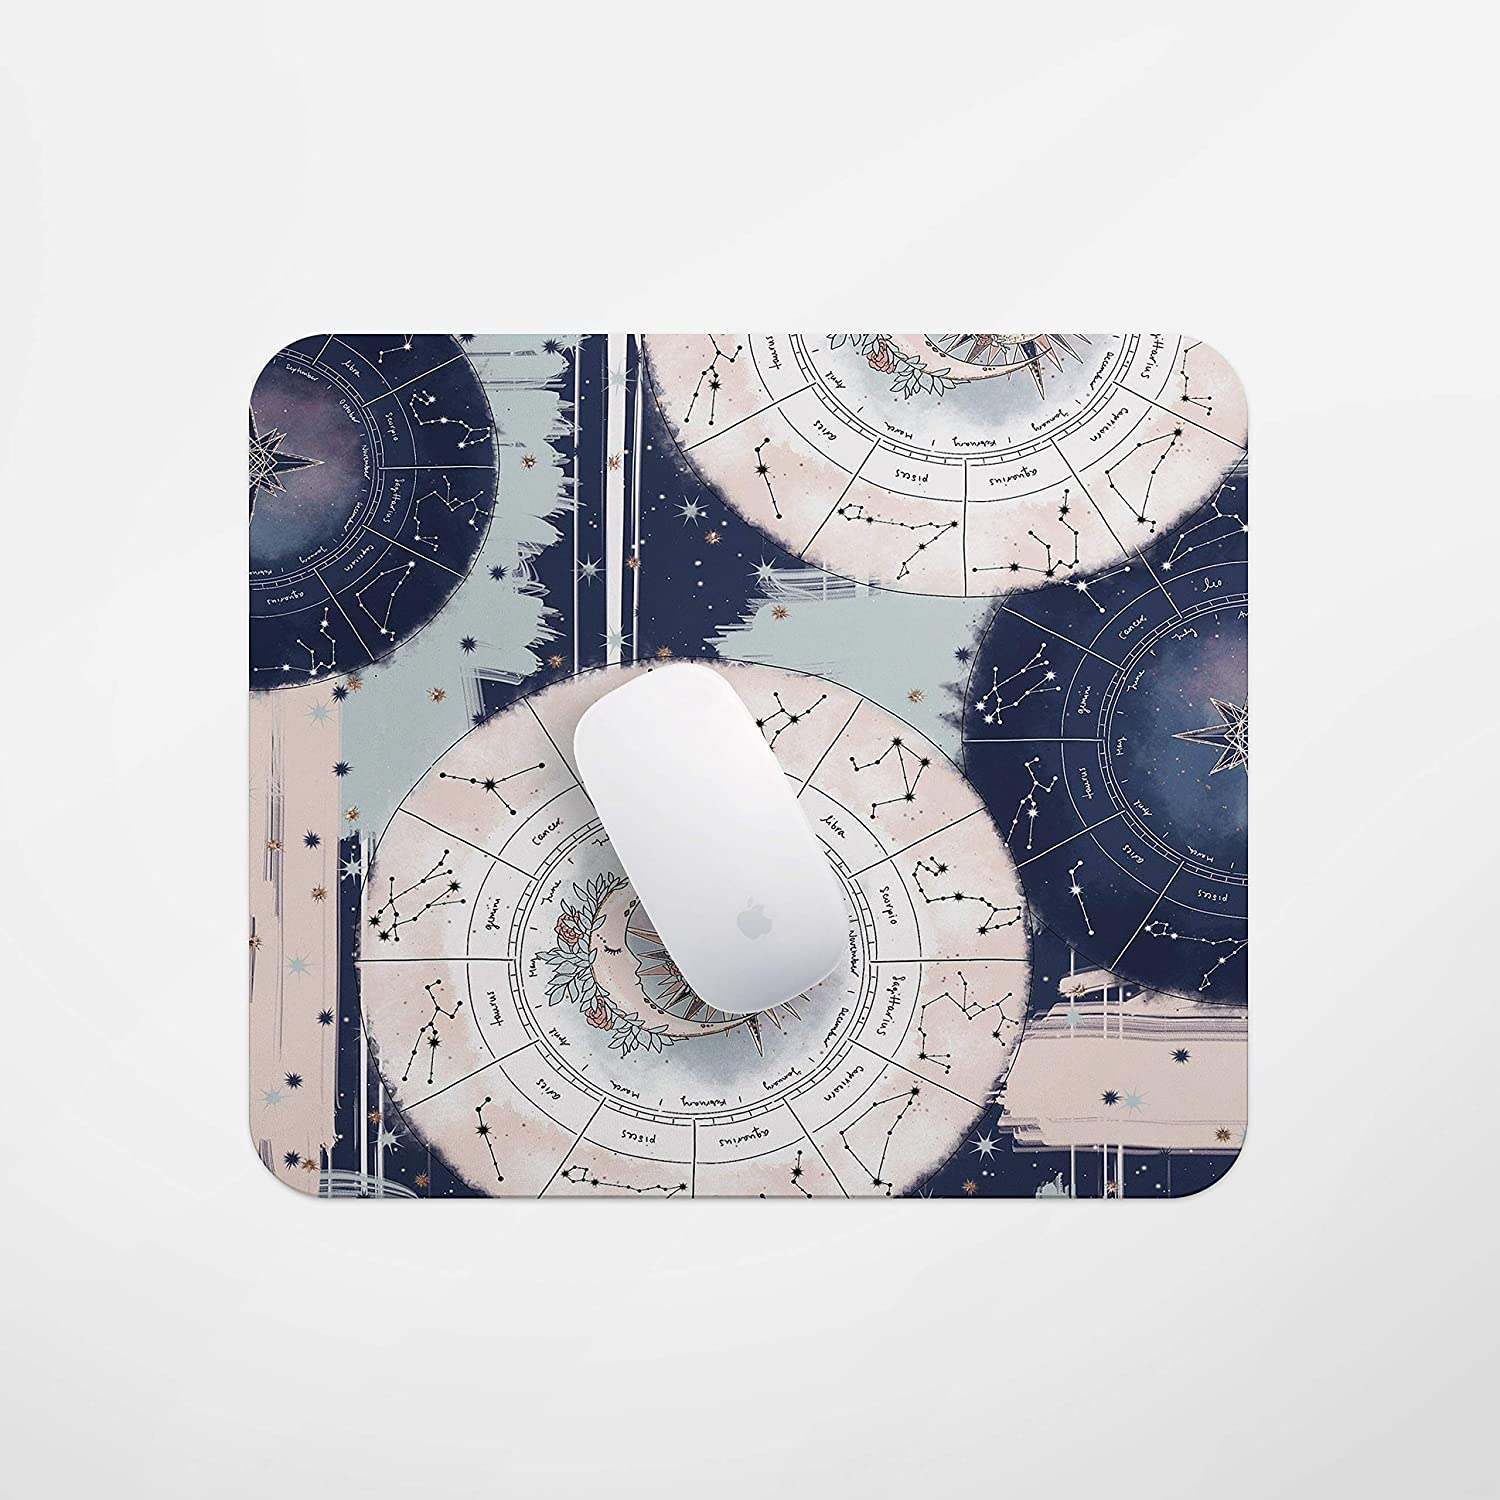 Game Mouse pad for Home and Office Laptop Computer Mouse Pads 12 Constellation Rose Gold Star Blue Pink Womens Special Modern Non-Slip Rubber Thick Mouse pad for Desk PC